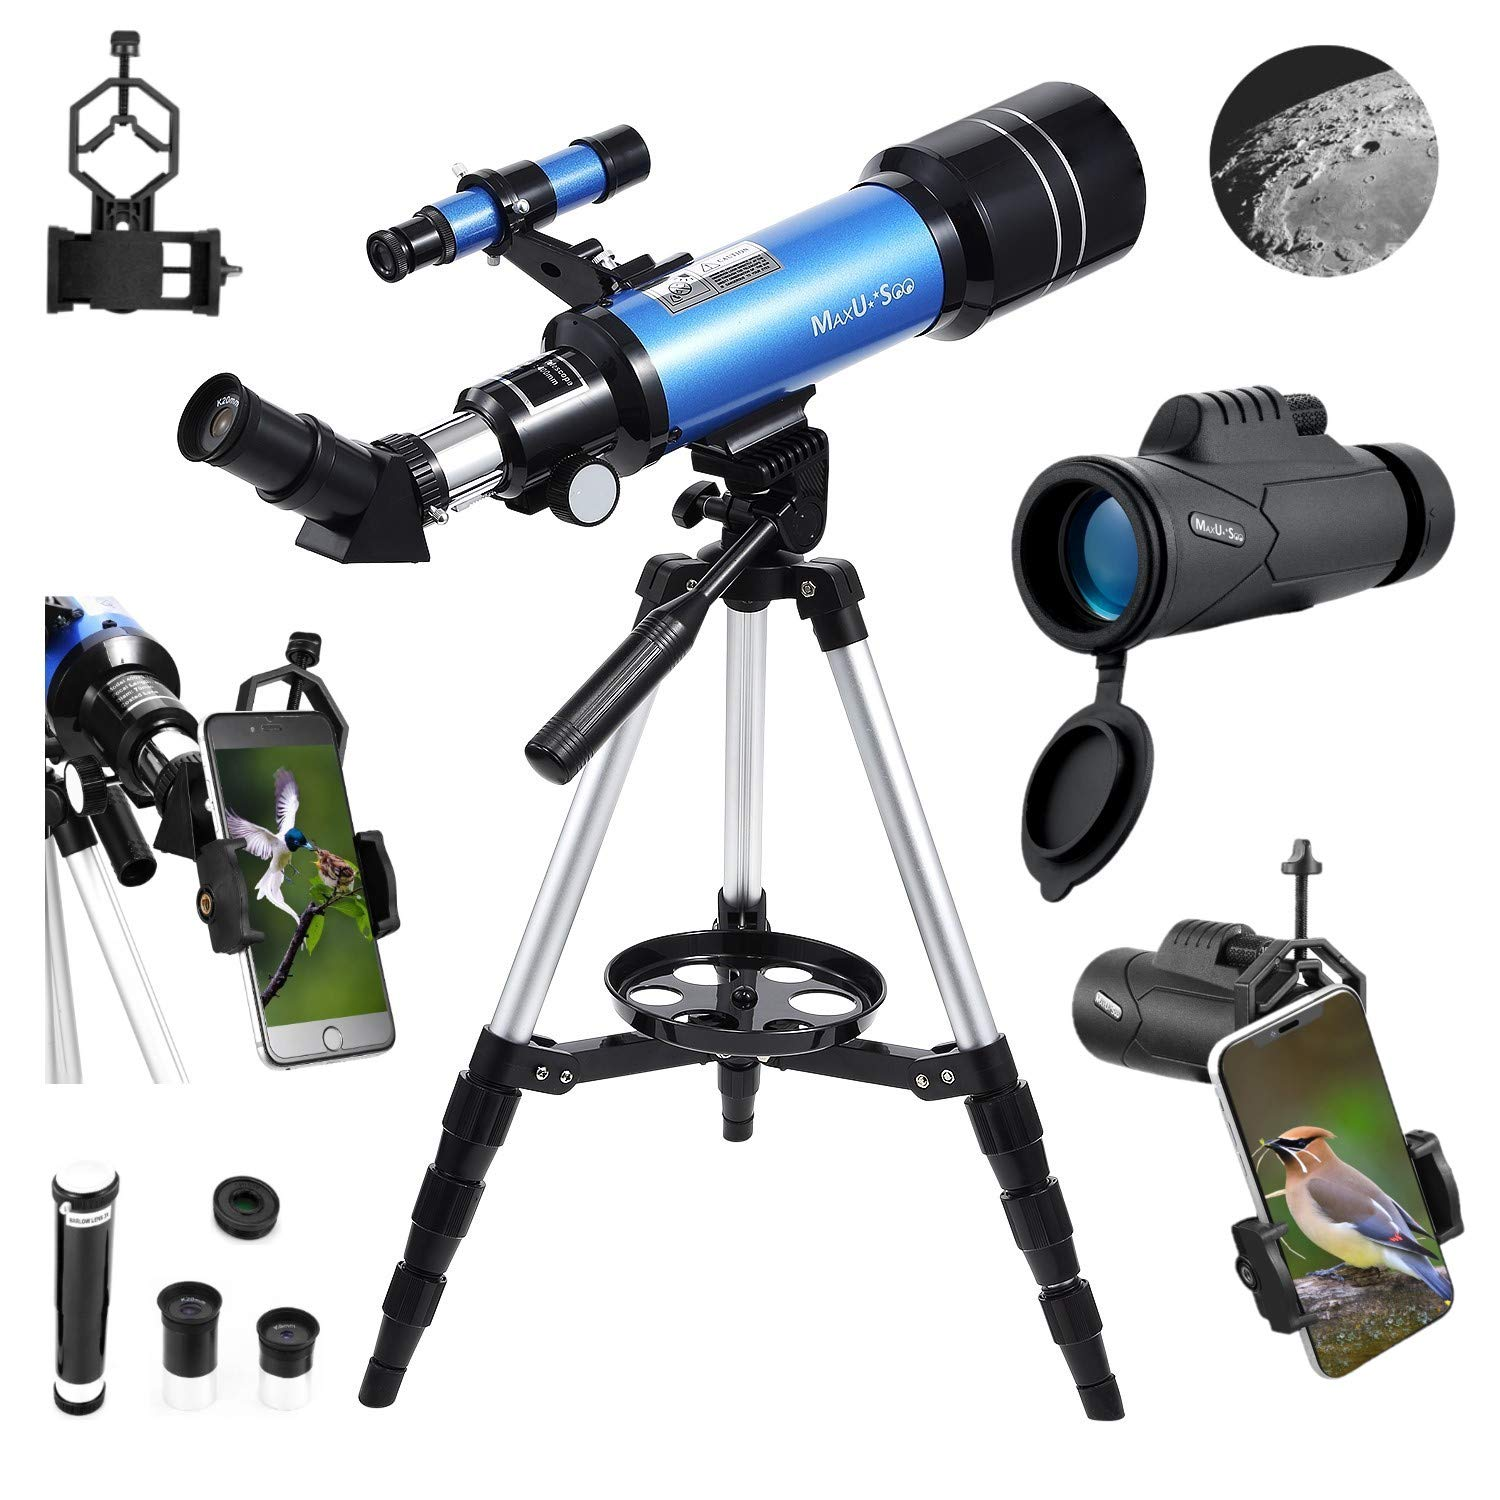 MaxUSee 70mm Refractor Telescope with Adjustable Tripod for Kids Adults & Beginners + Portable 10X42 HD Monocular Bak4 Prism FMC Lens, Travel Scope with Backpack and Phone Adapter by MaxUSee